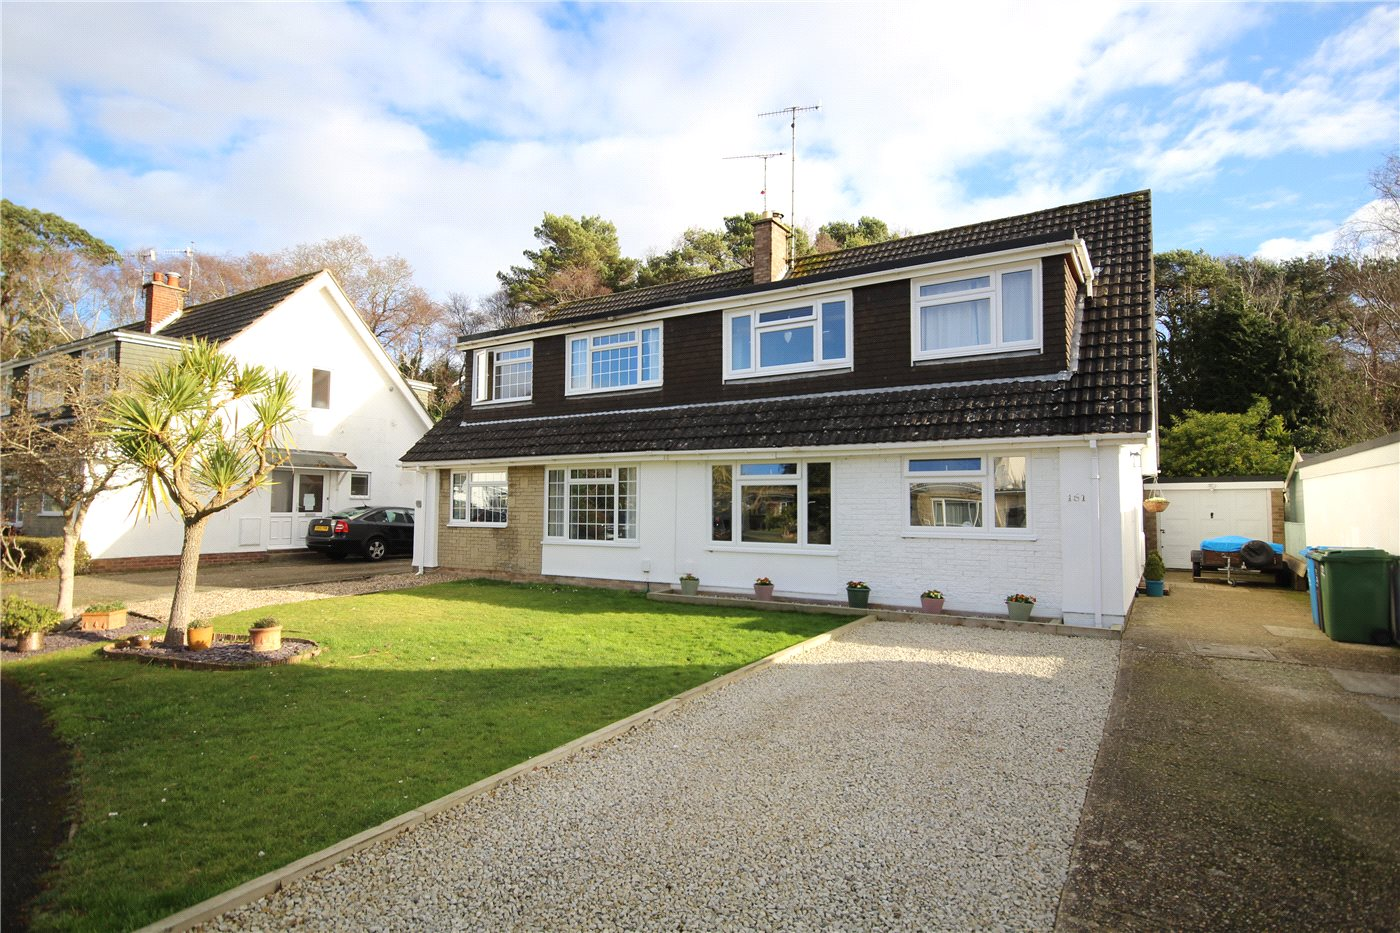 4 Bedrooms Semi Detached House for sale in South Western Crescent, Lower Parkstone, Poole, BH14